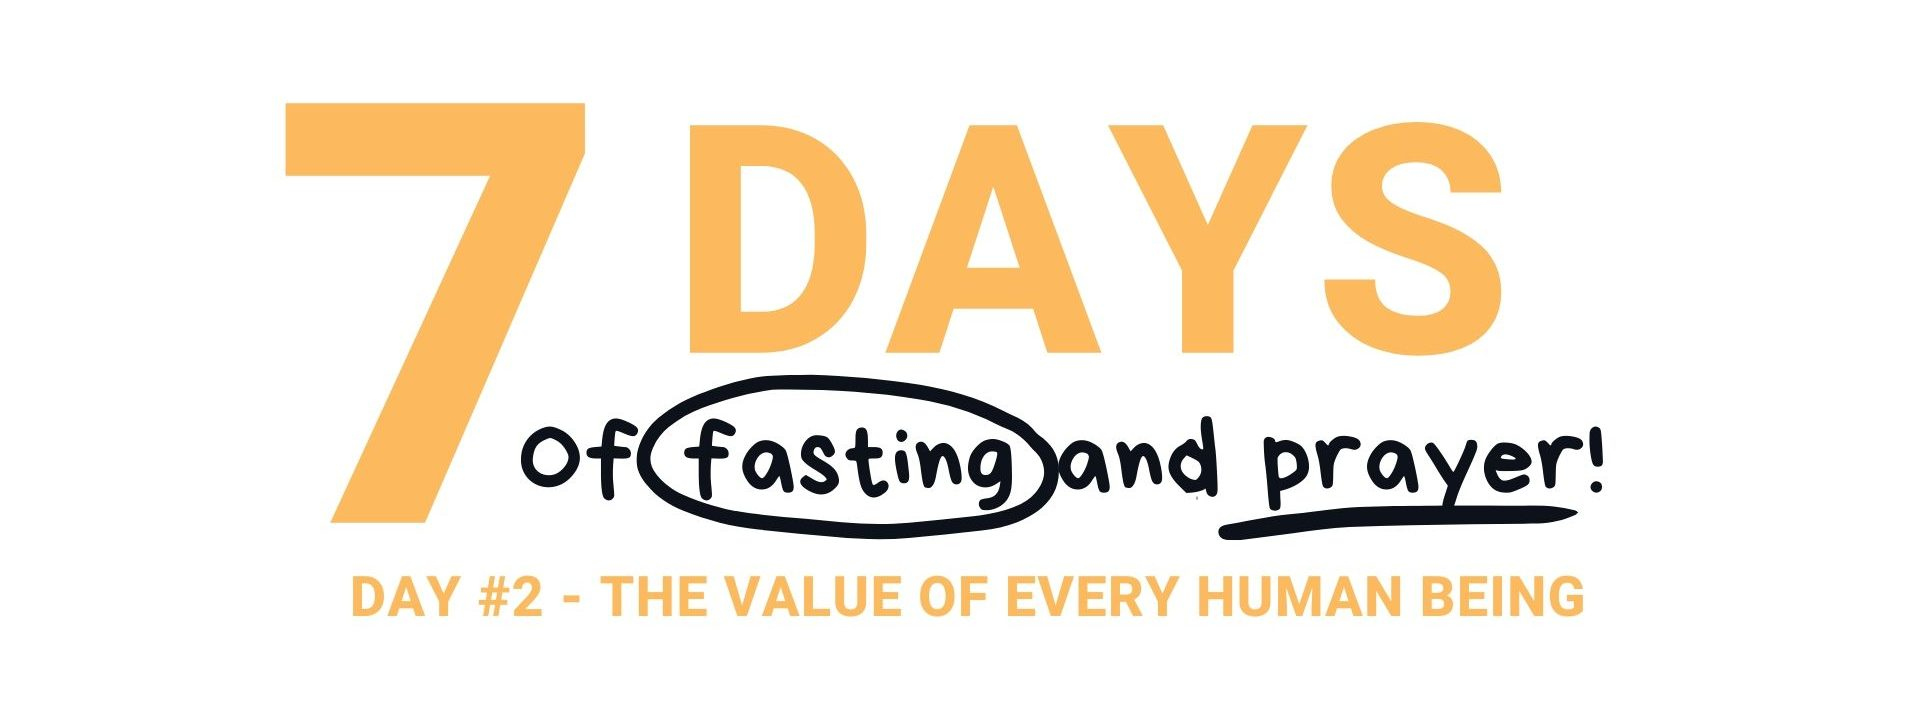 Day 2 Fast & Pray Value of Every Human